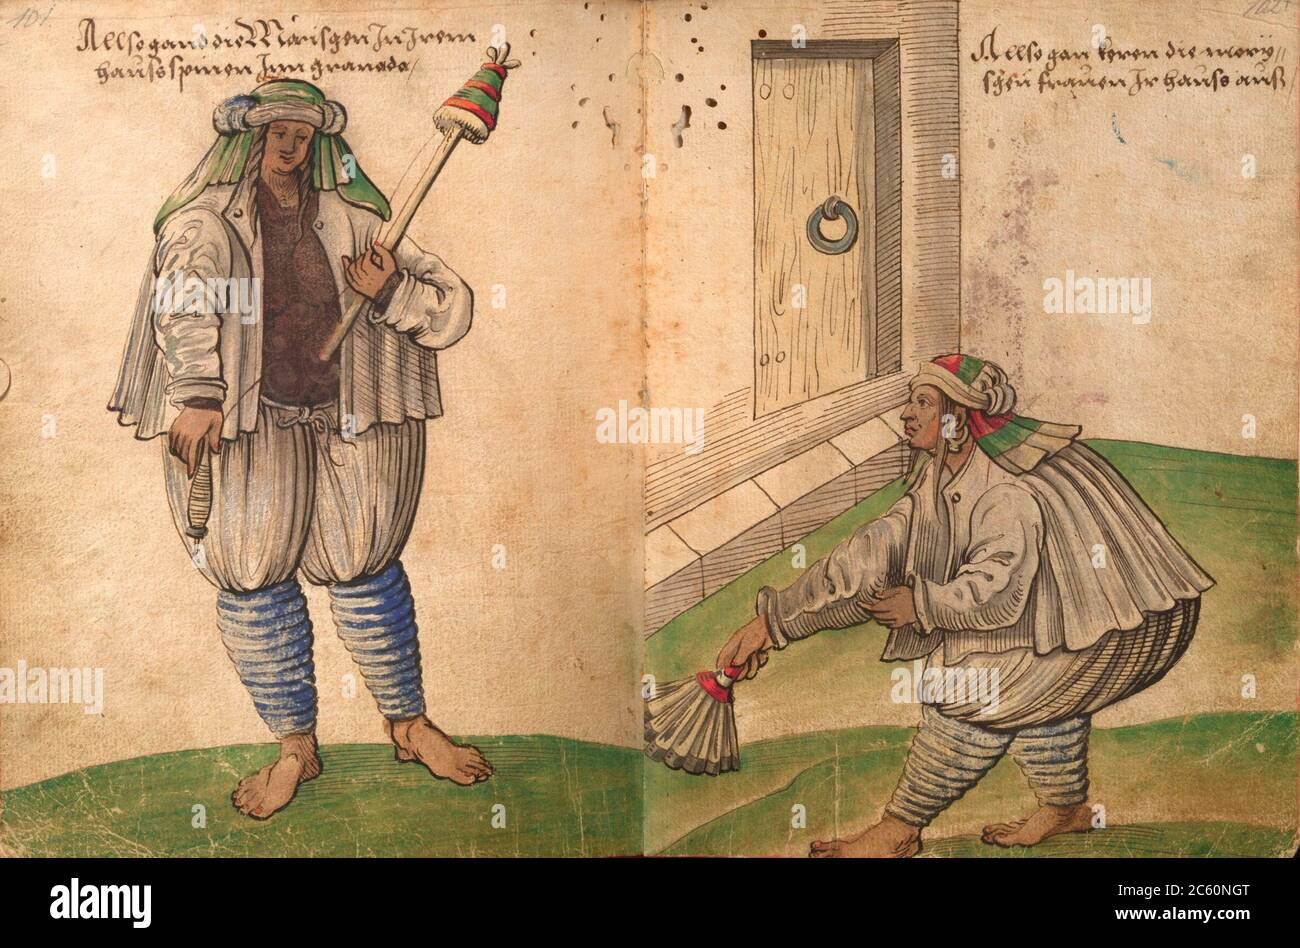 Moriscos women spinning and sweeping at home. Draw from Trachtenbuch by Christoph Weiditz, 1530. Nuremberg Germanisches Nationalmuseum. Stock Photo